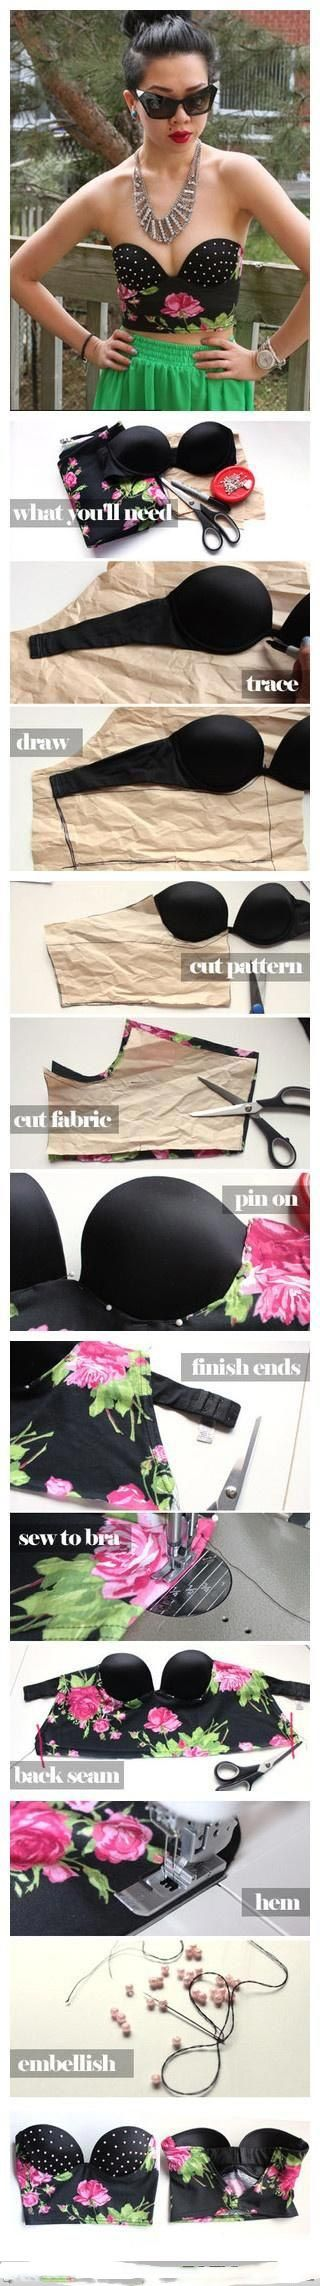 17 Interesting DIY Fashion Ideas- I would need to add more fabric on top of bra but sweet!!  could come in handy for Halloween ideas!